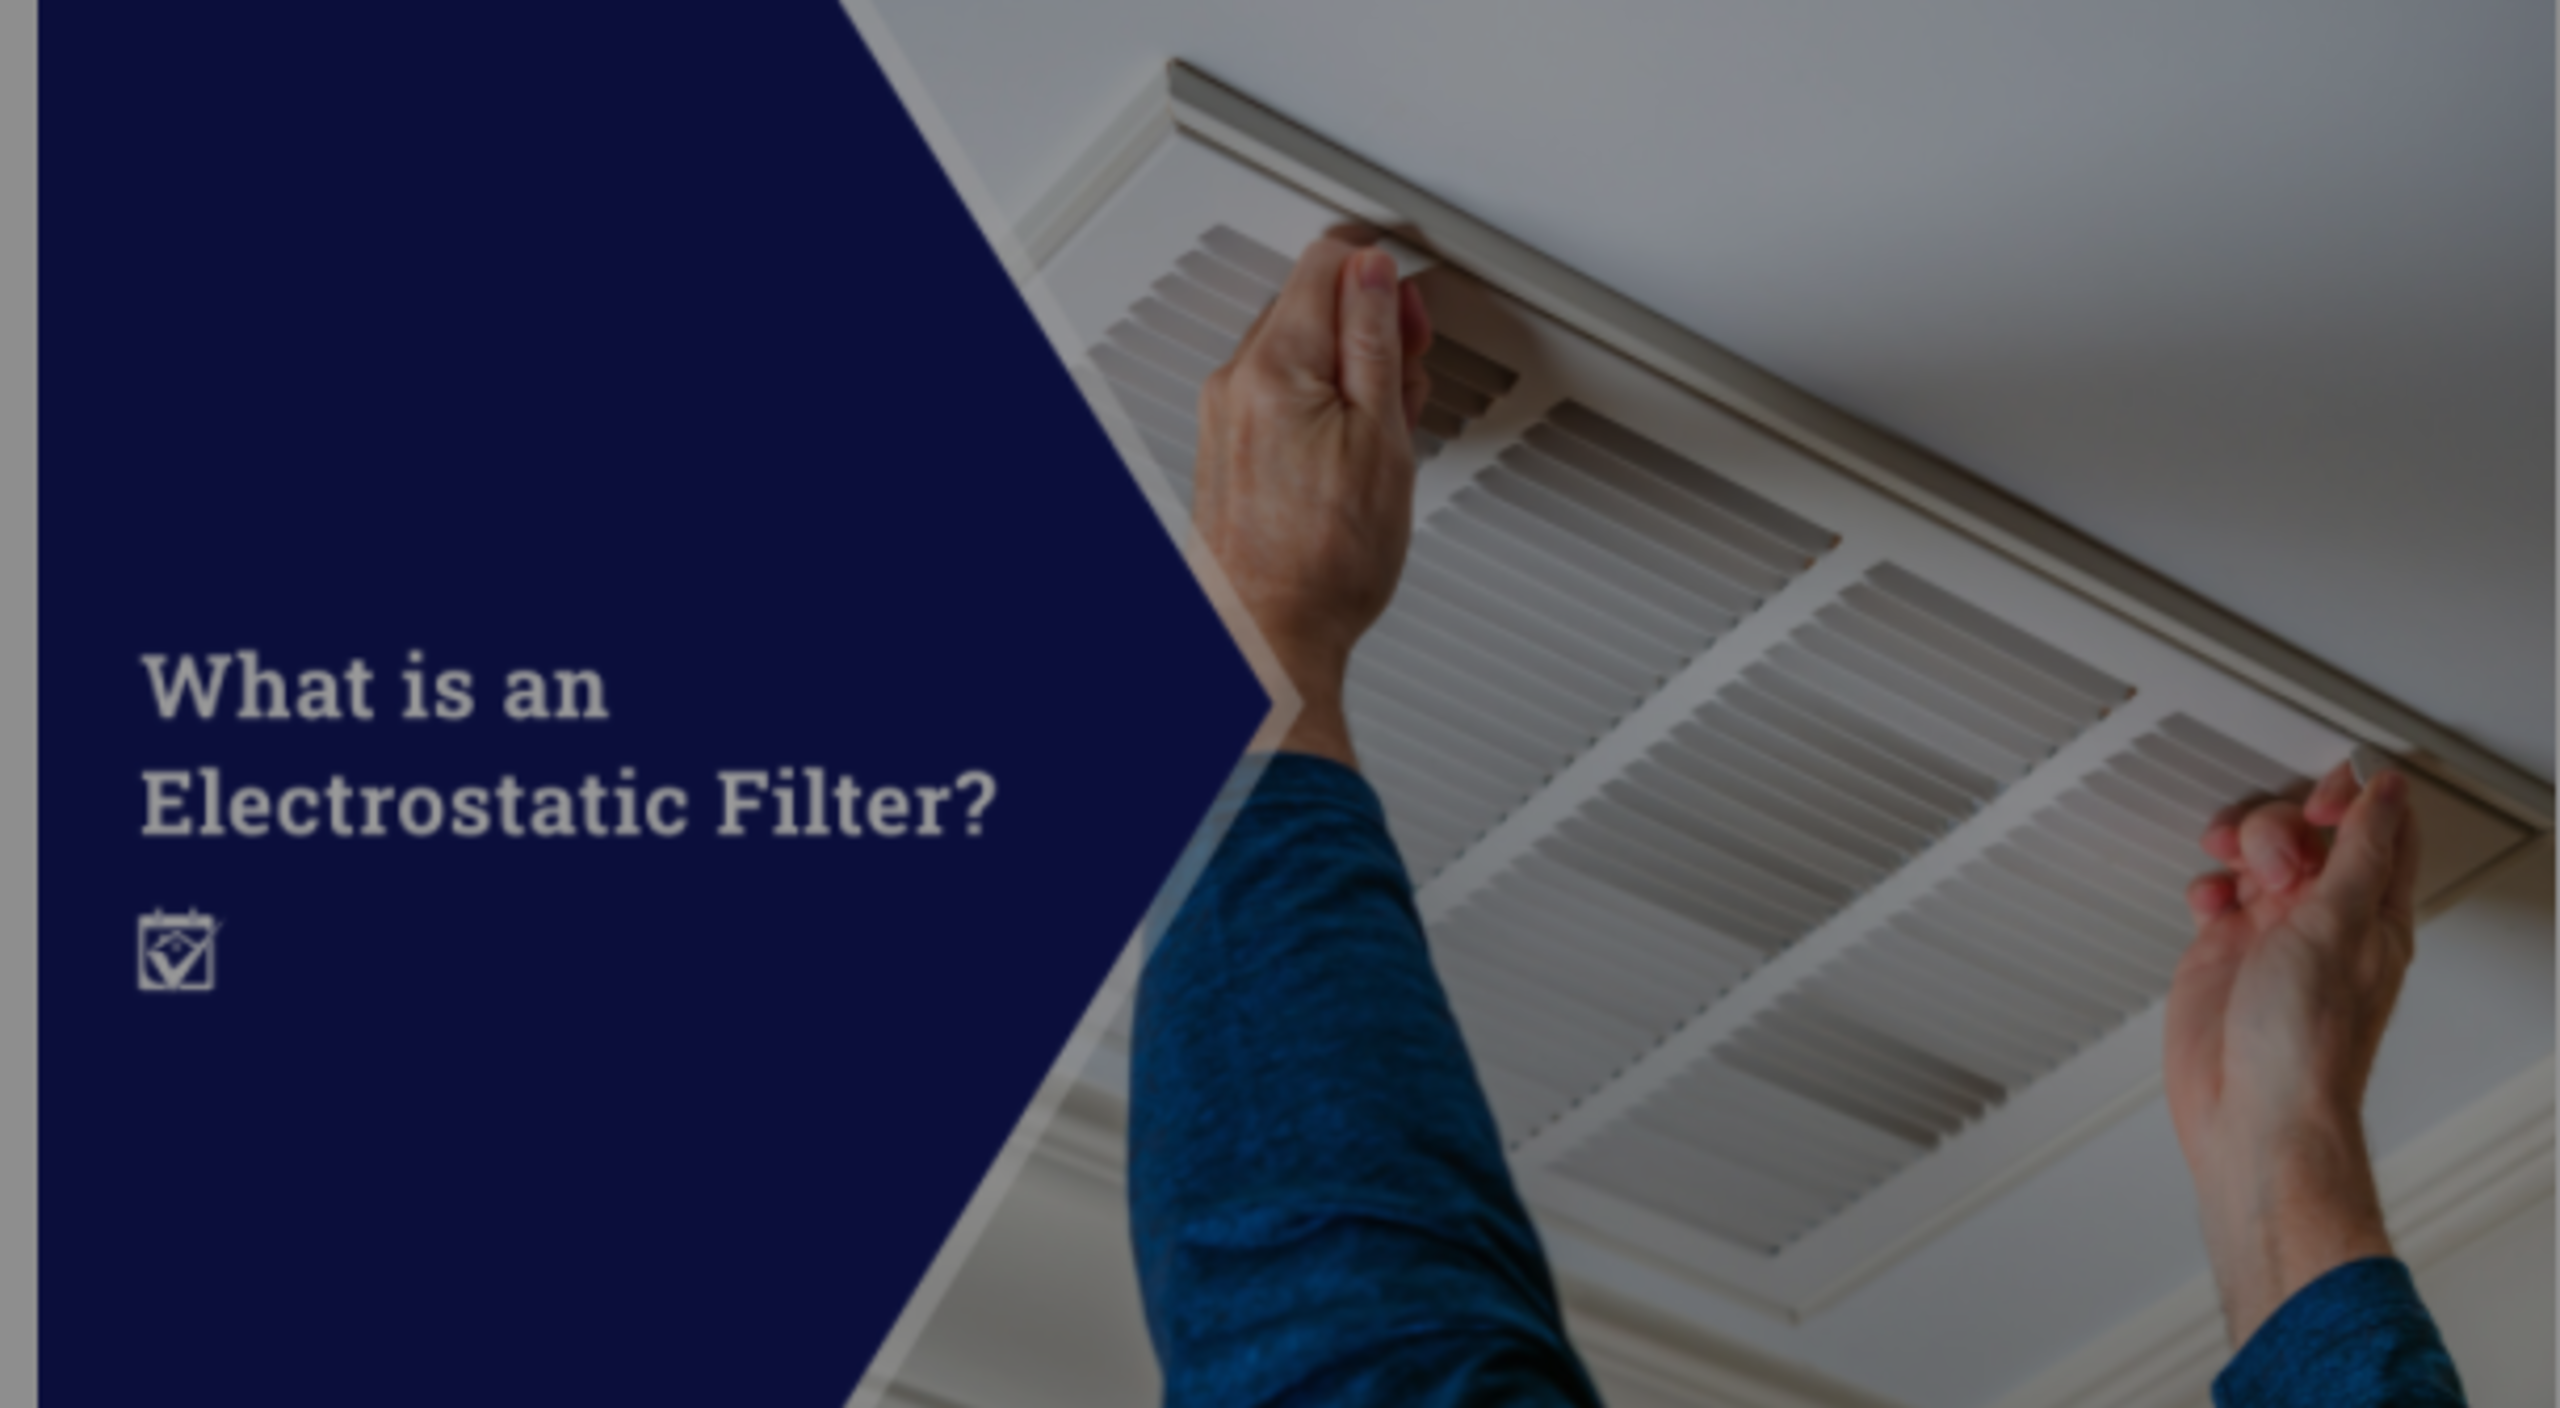 What is an Electrostatic Filter?